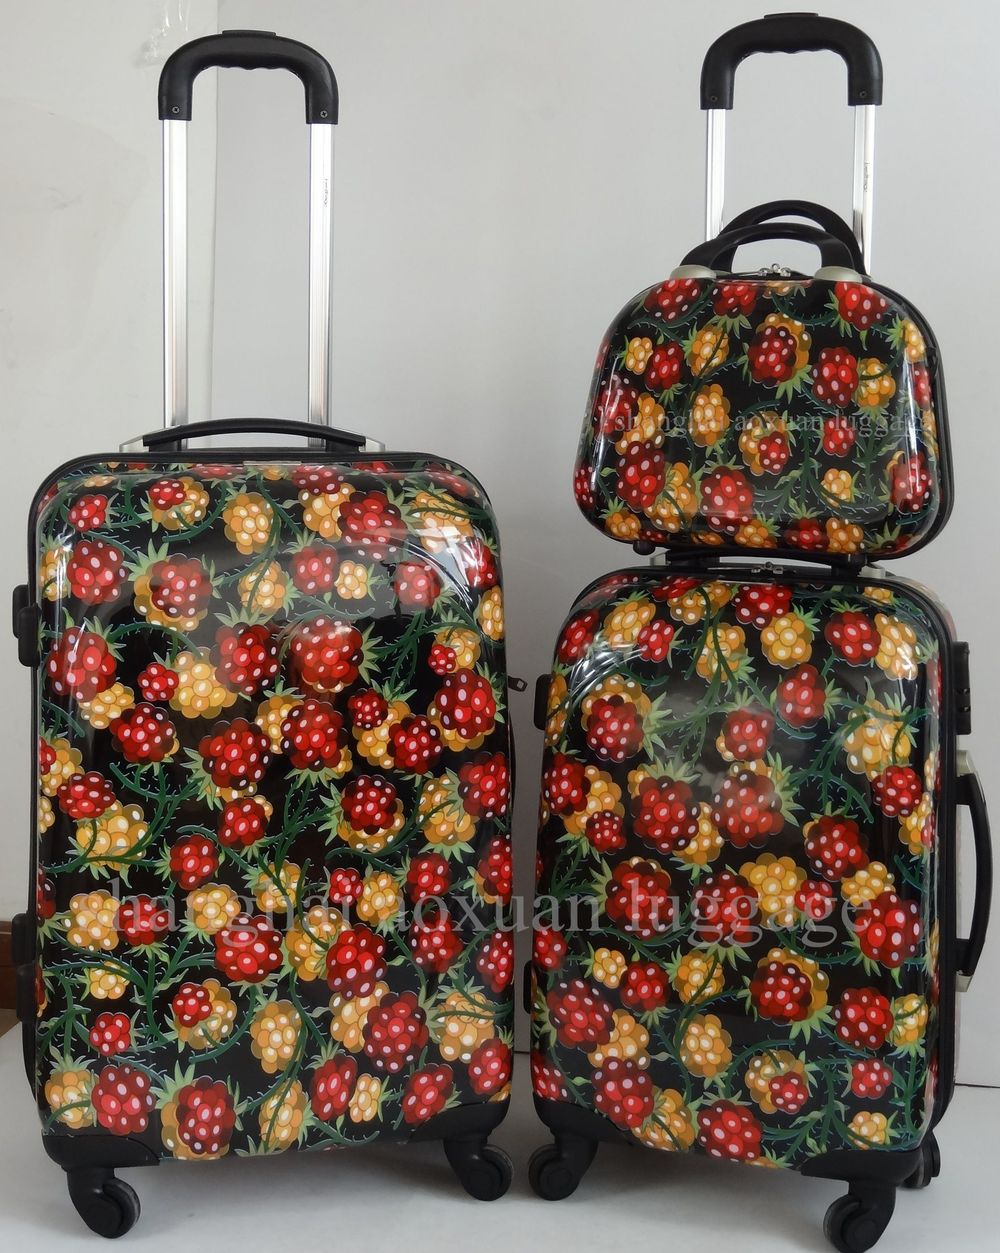 eminent luggage sets 2014 new product ABS printed hard luggage